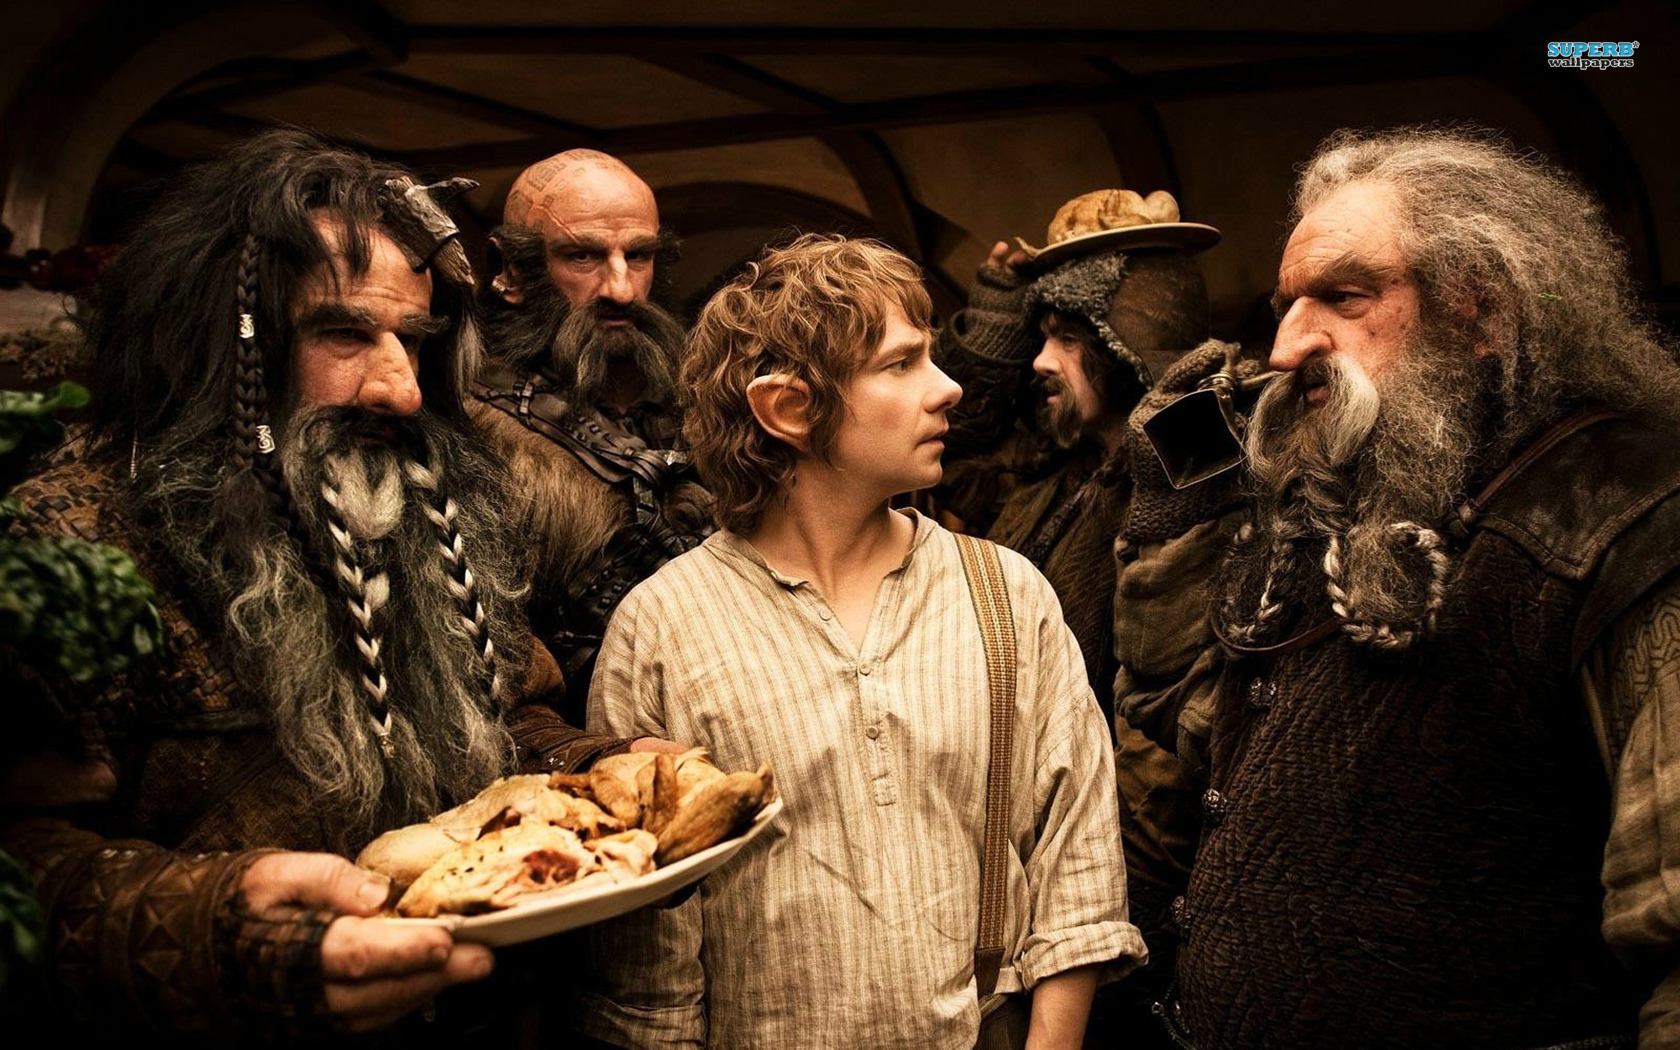 Movie Review – Hobbit, The: An Unexpected Journey